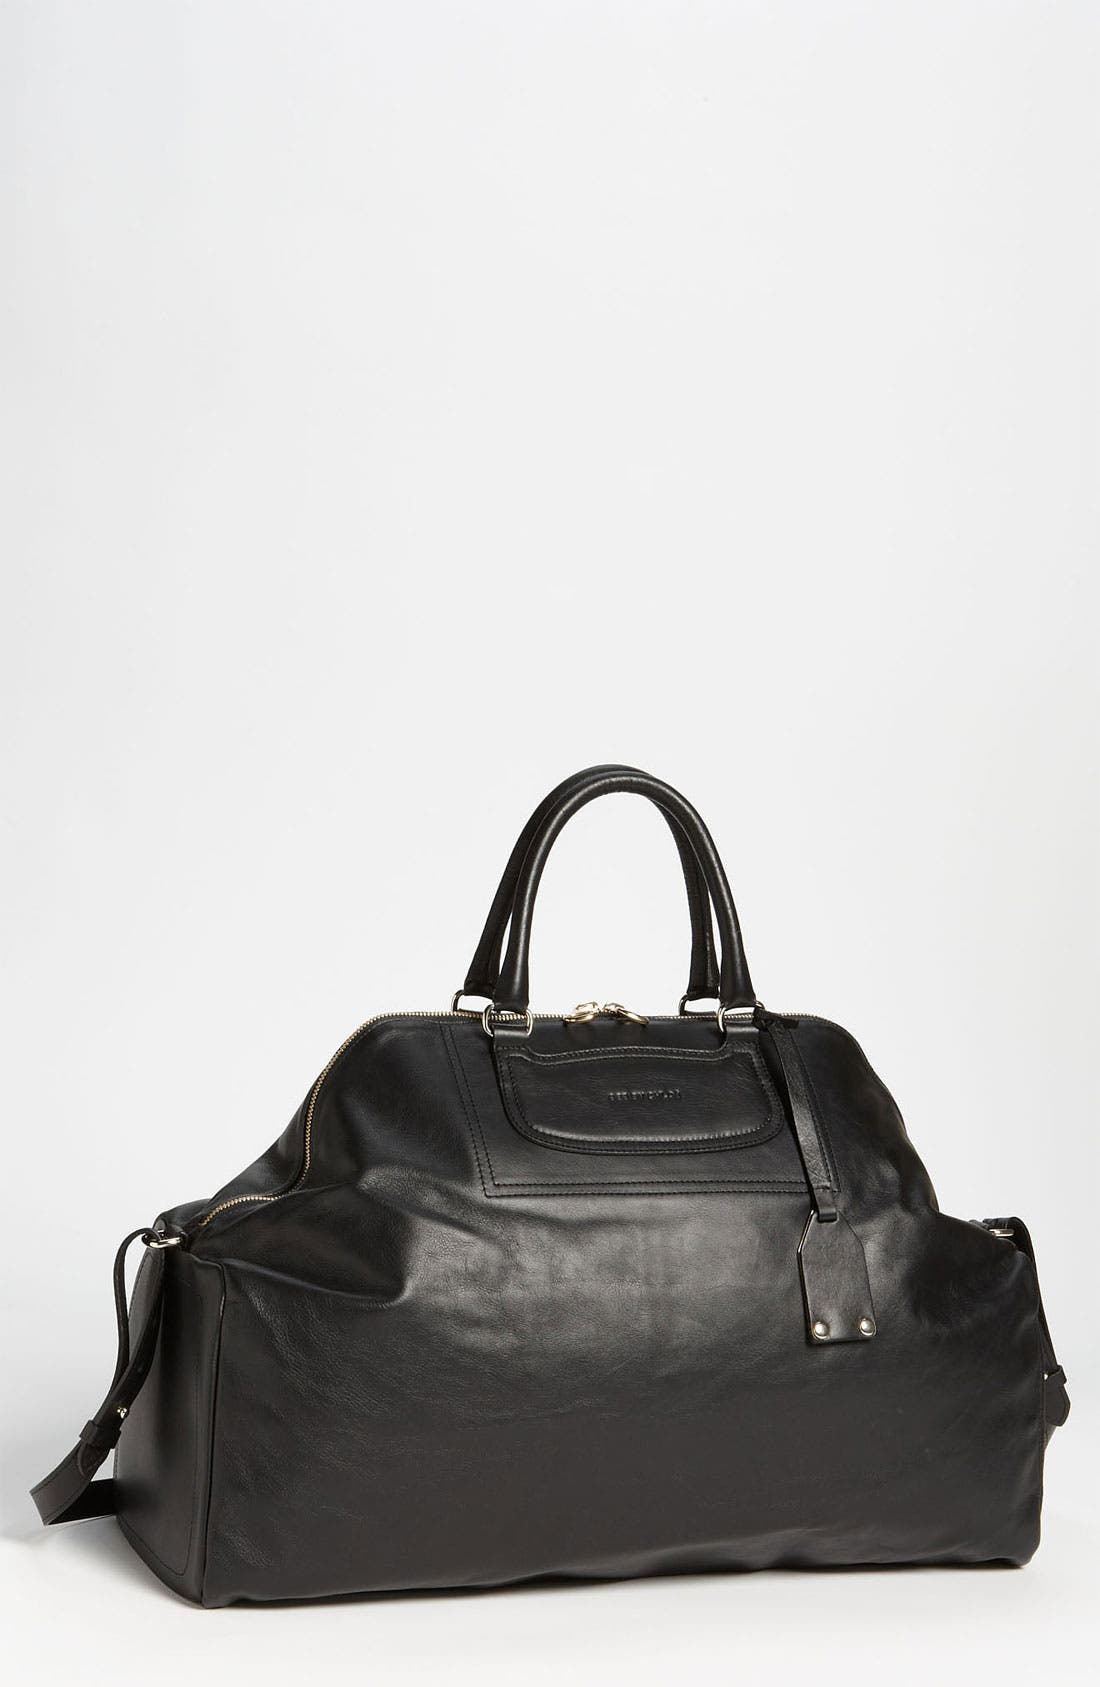 Alternate Image 1 Selected - See by Chloé 'Albane Big - Double Function' Leather Tote